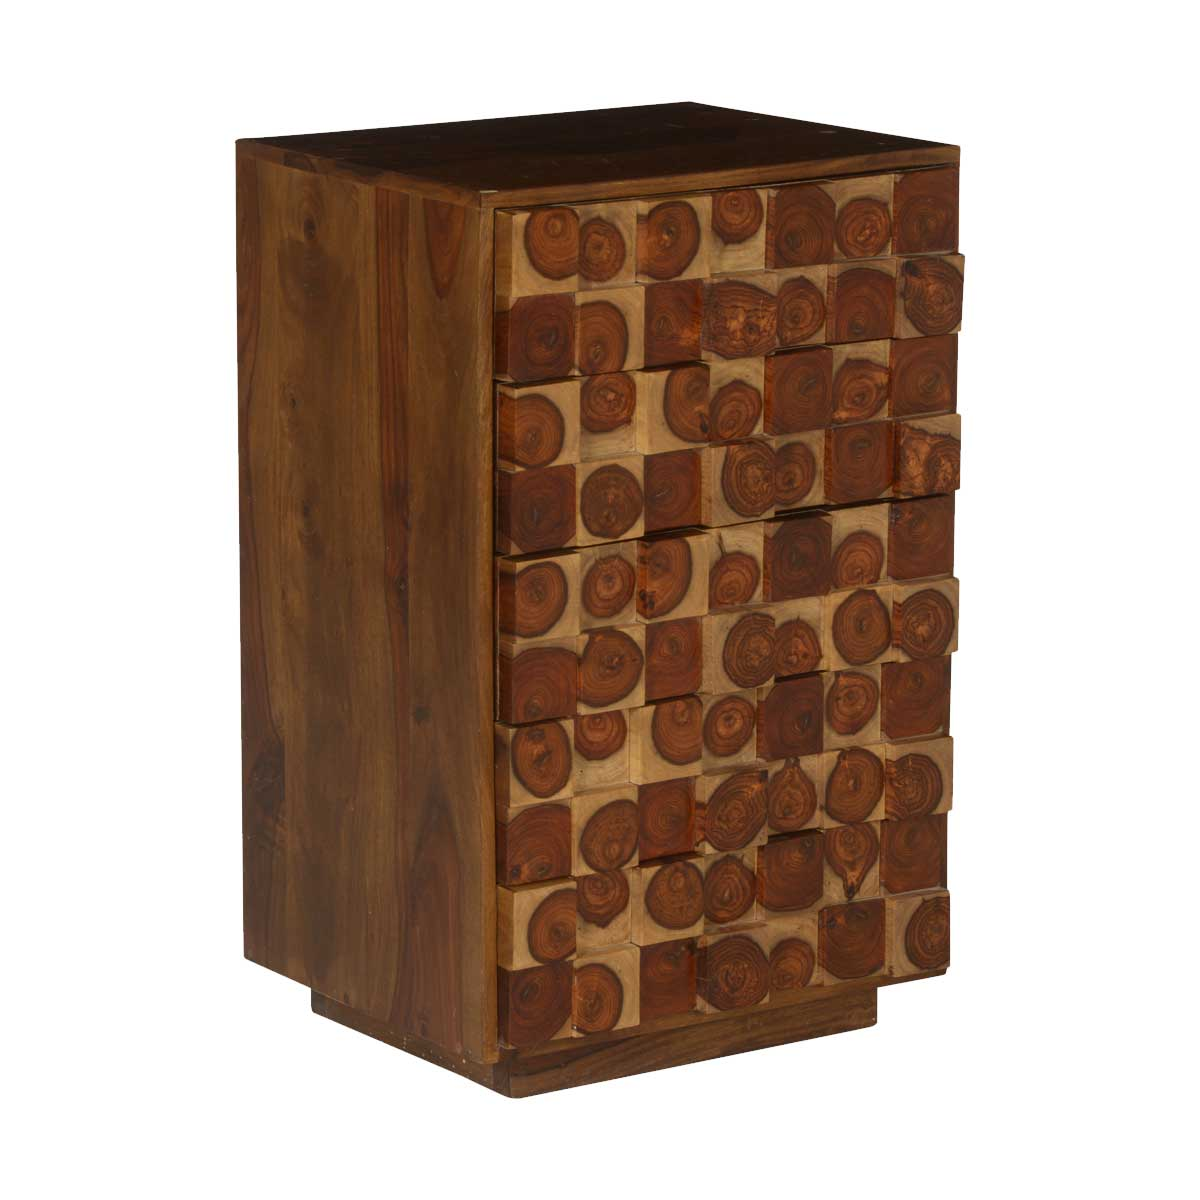 Arvada Tree Rings Tiles Solid Wood Chest of 5 Drawers